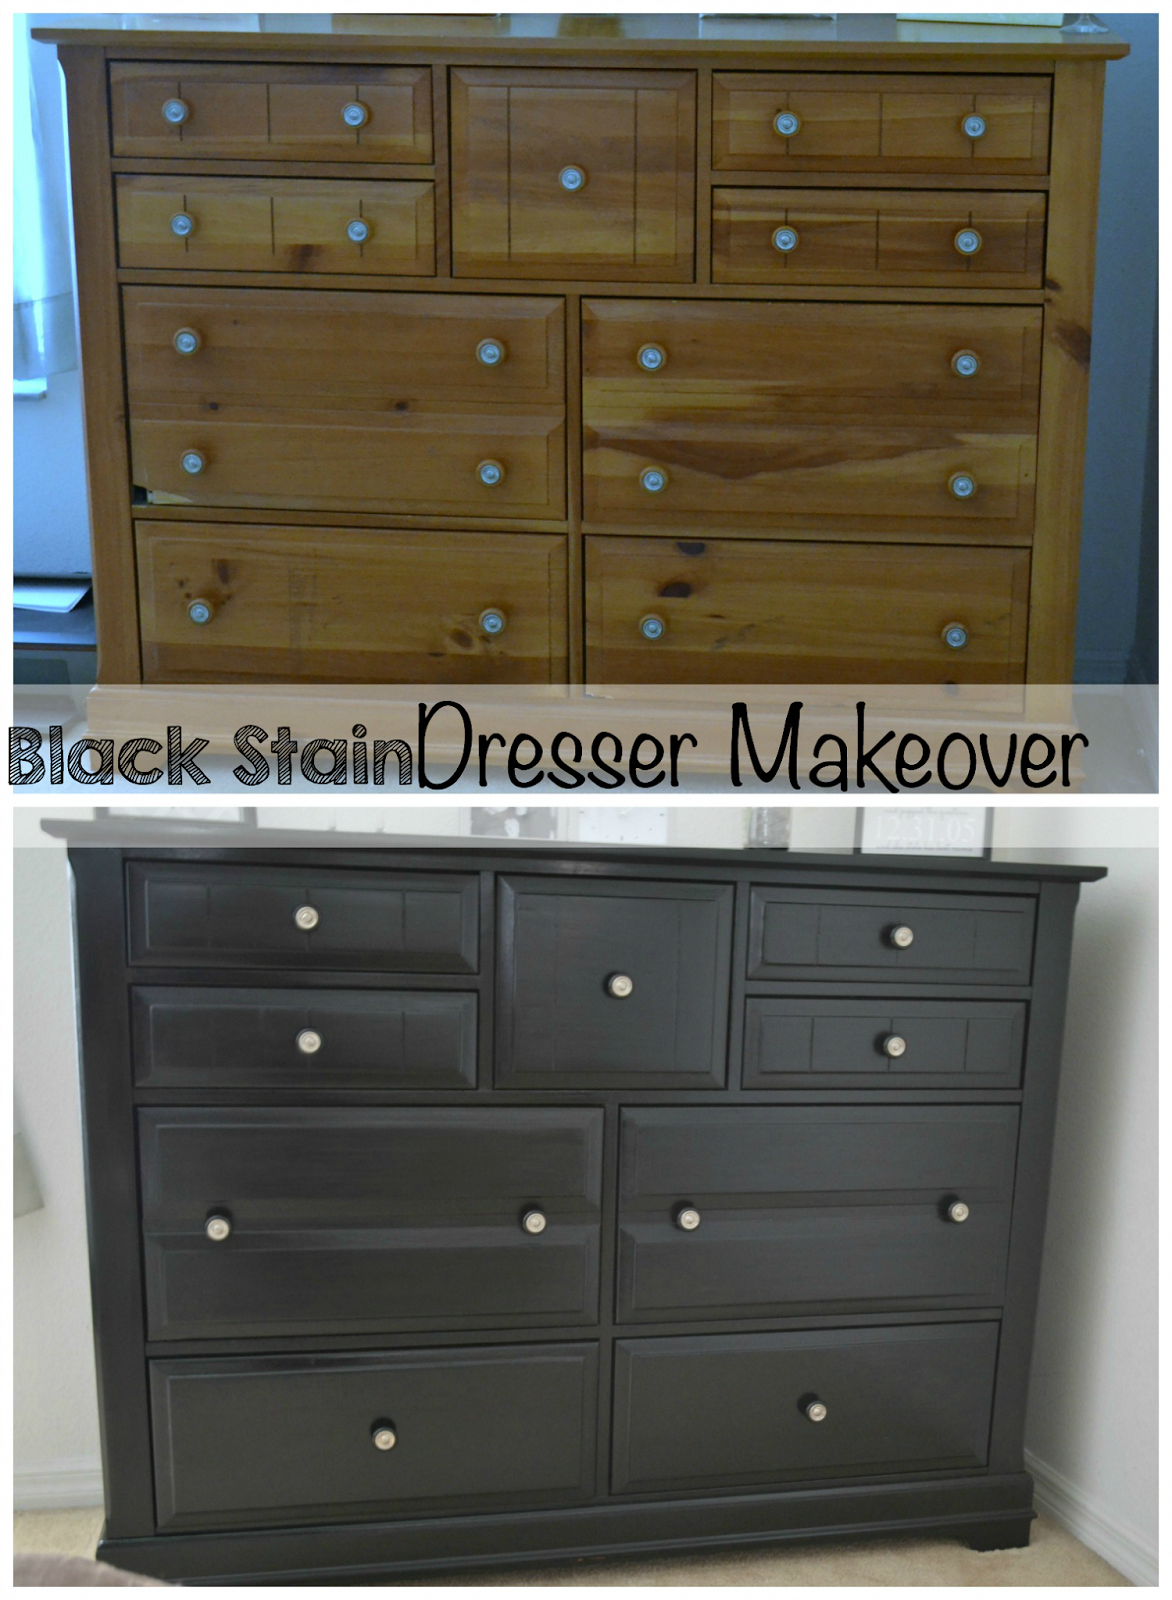 Bedroom Furniture Makeover Part 2 How To Stain Your Wood Furniture Black Howtostainfurnitur Bedroom Furniture Makeover Furniture Makeover Staining Furniture